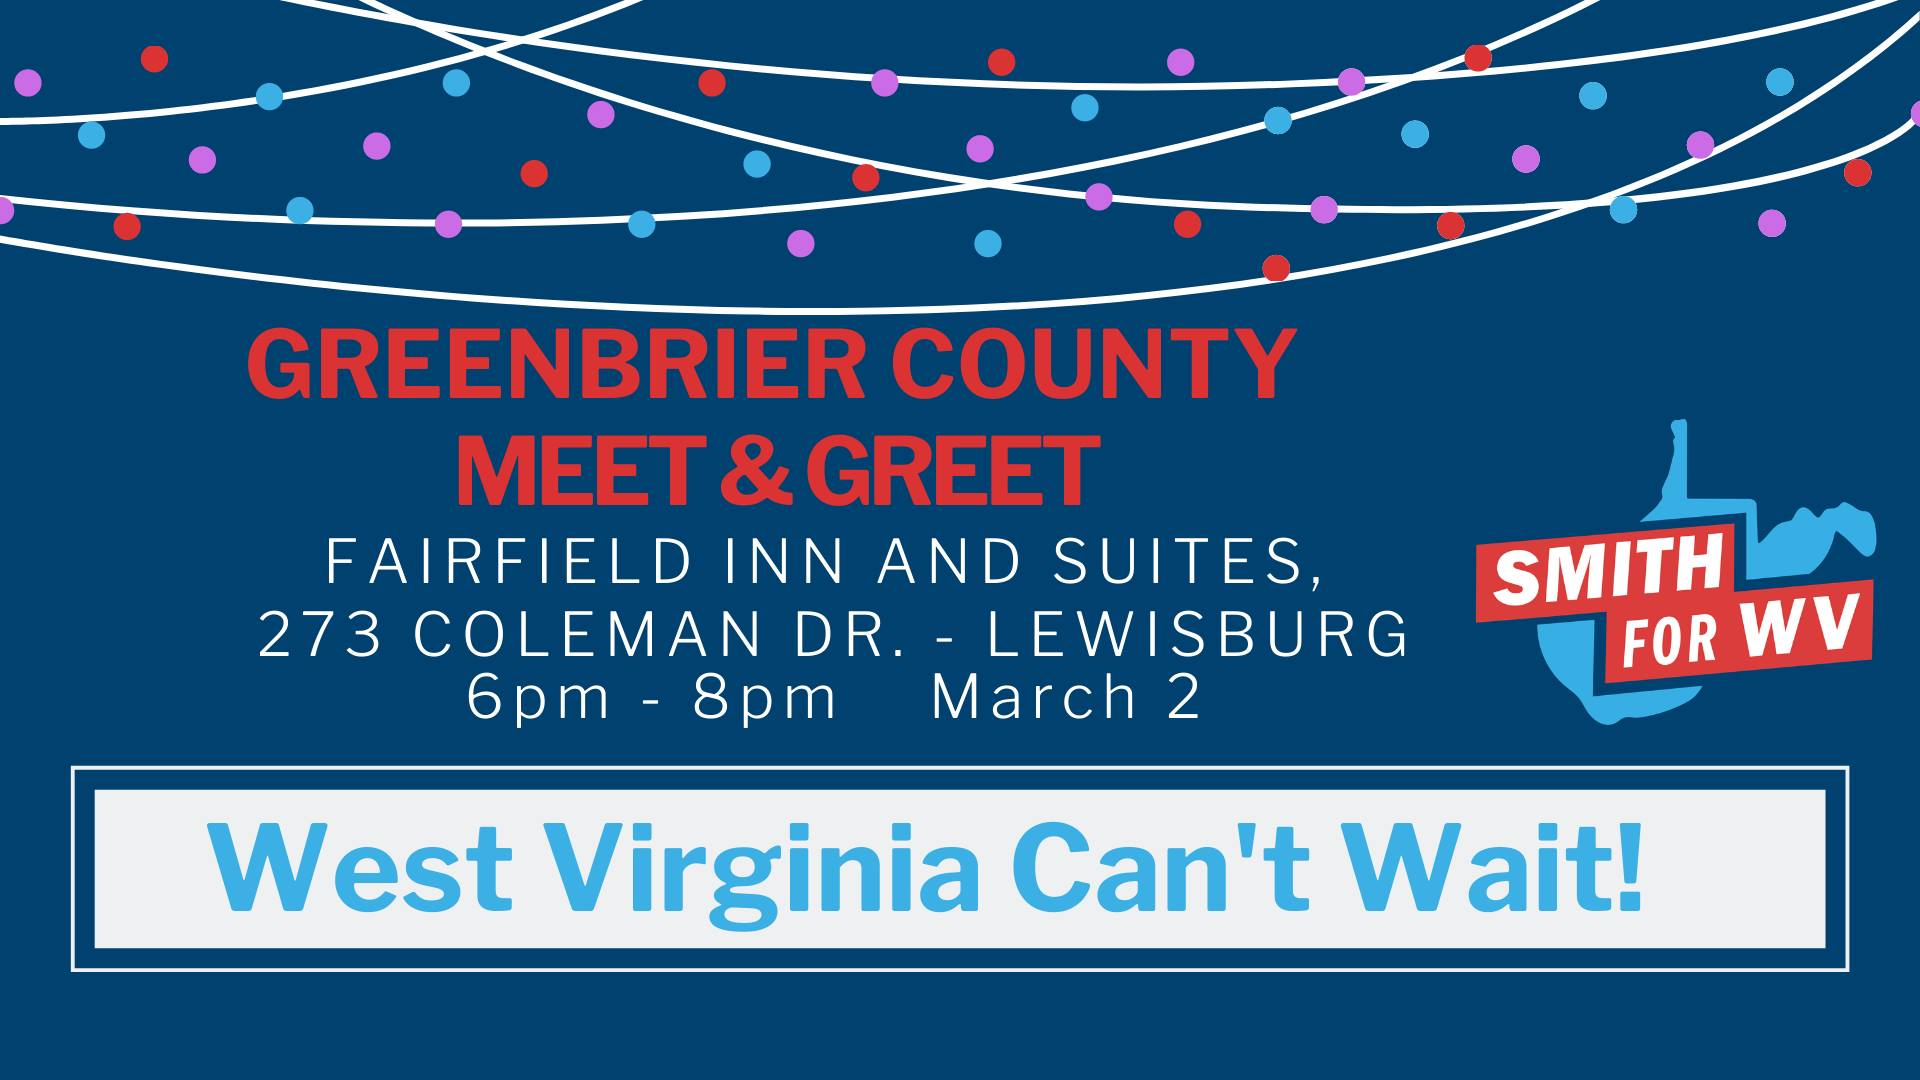 Greenbrier Co. Fundraiser graphic